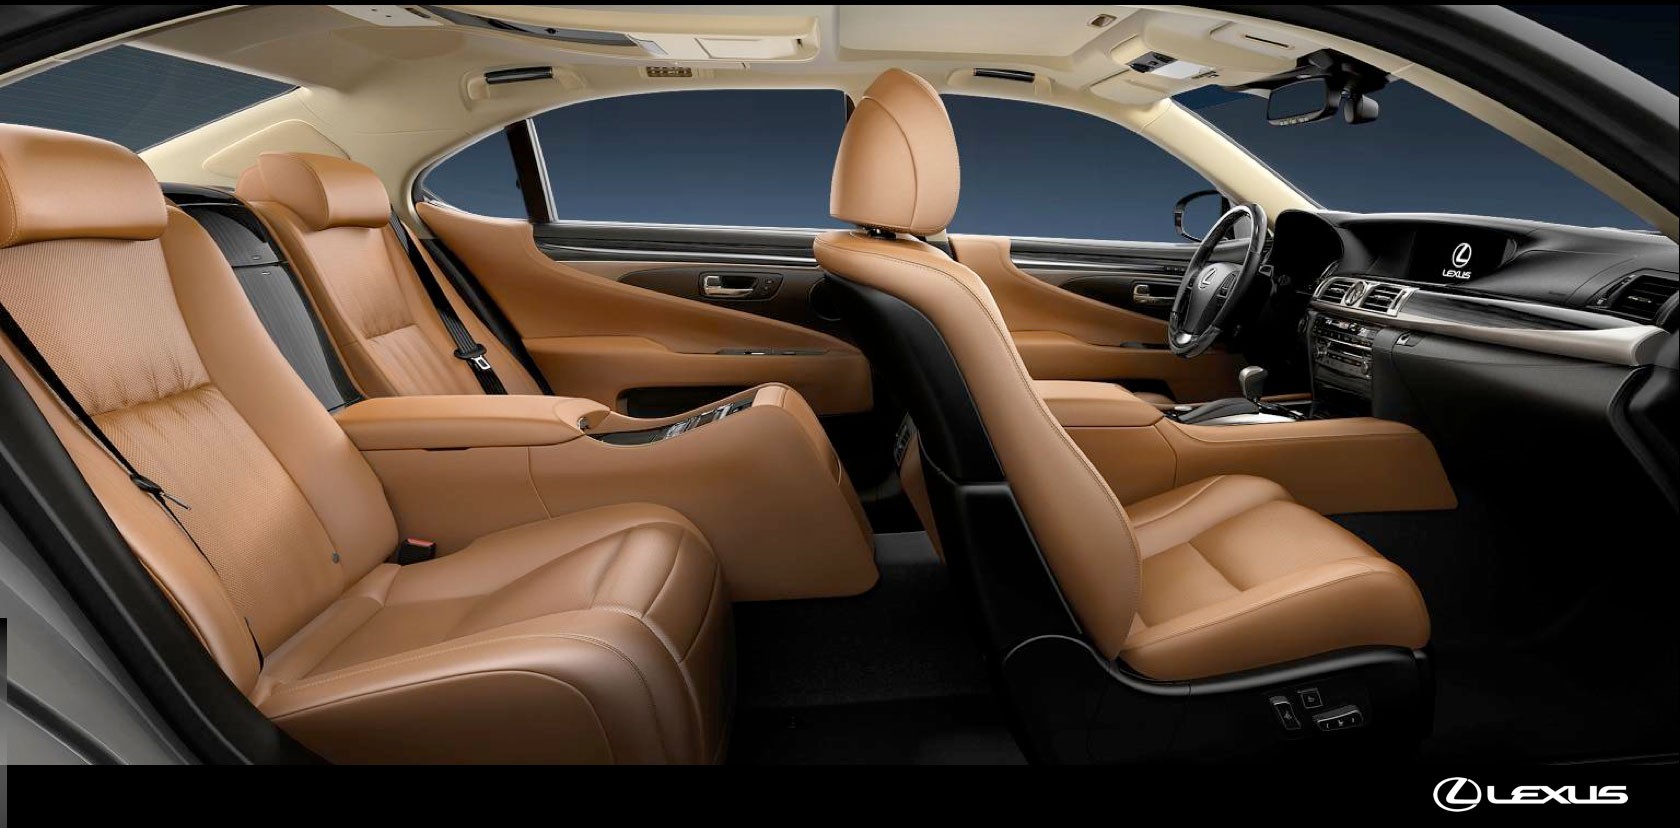 lexus lc backseat. u can\u0027t fit 3 people in the back of this one either. lexus lc backseat